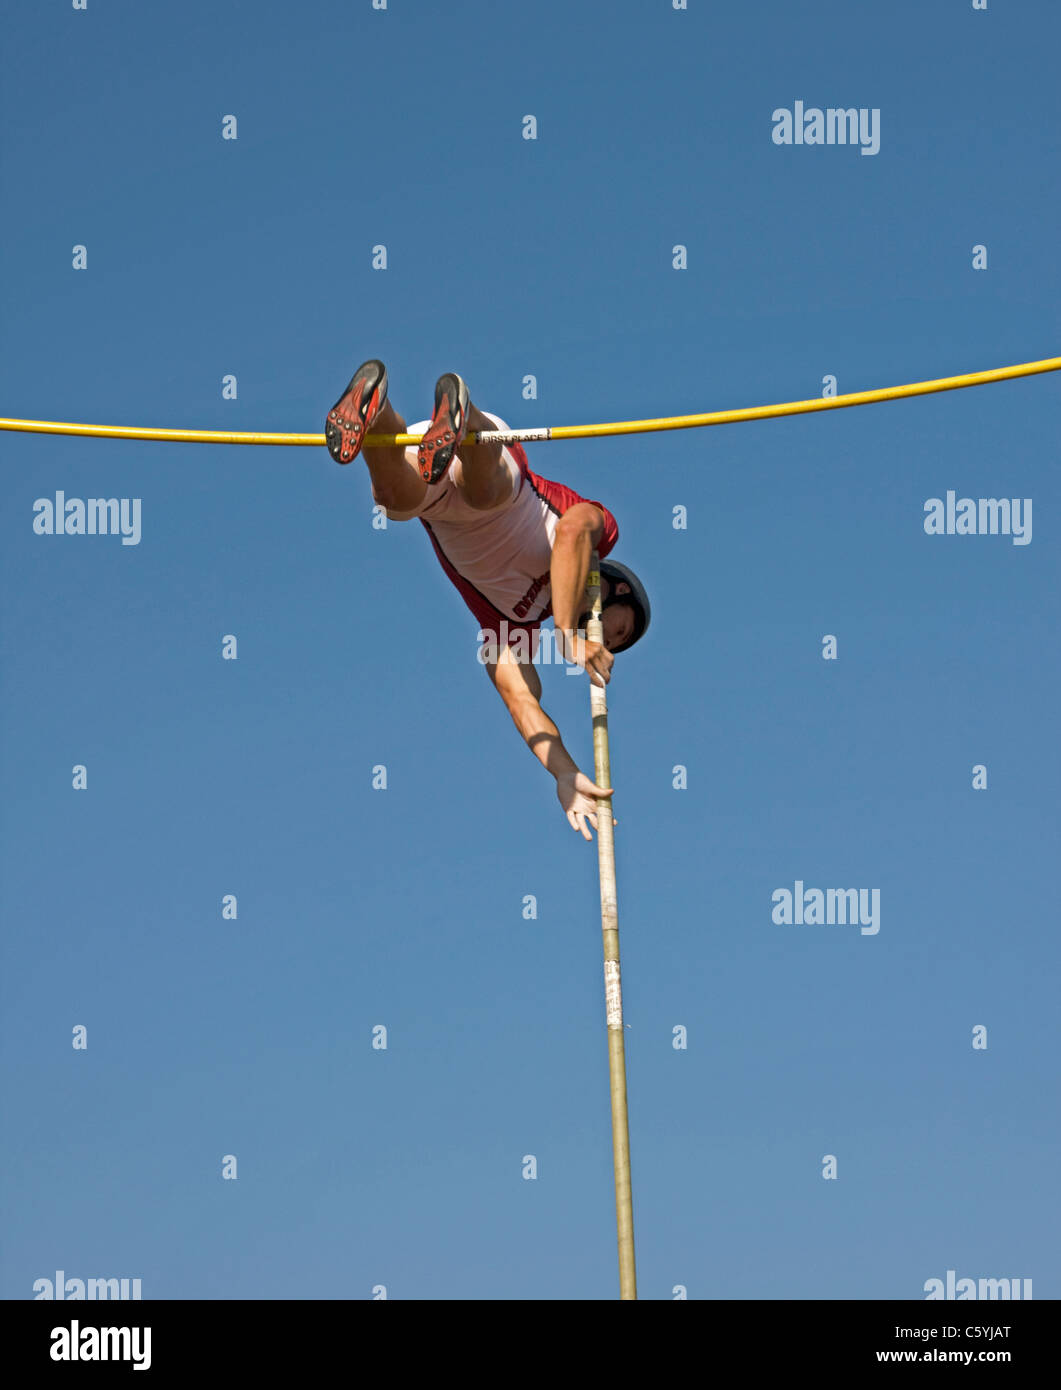 A high school boy makes a valiant attempt at clearing the pole vault bar at a sectional track meet in Wisconsin. - Stock Image